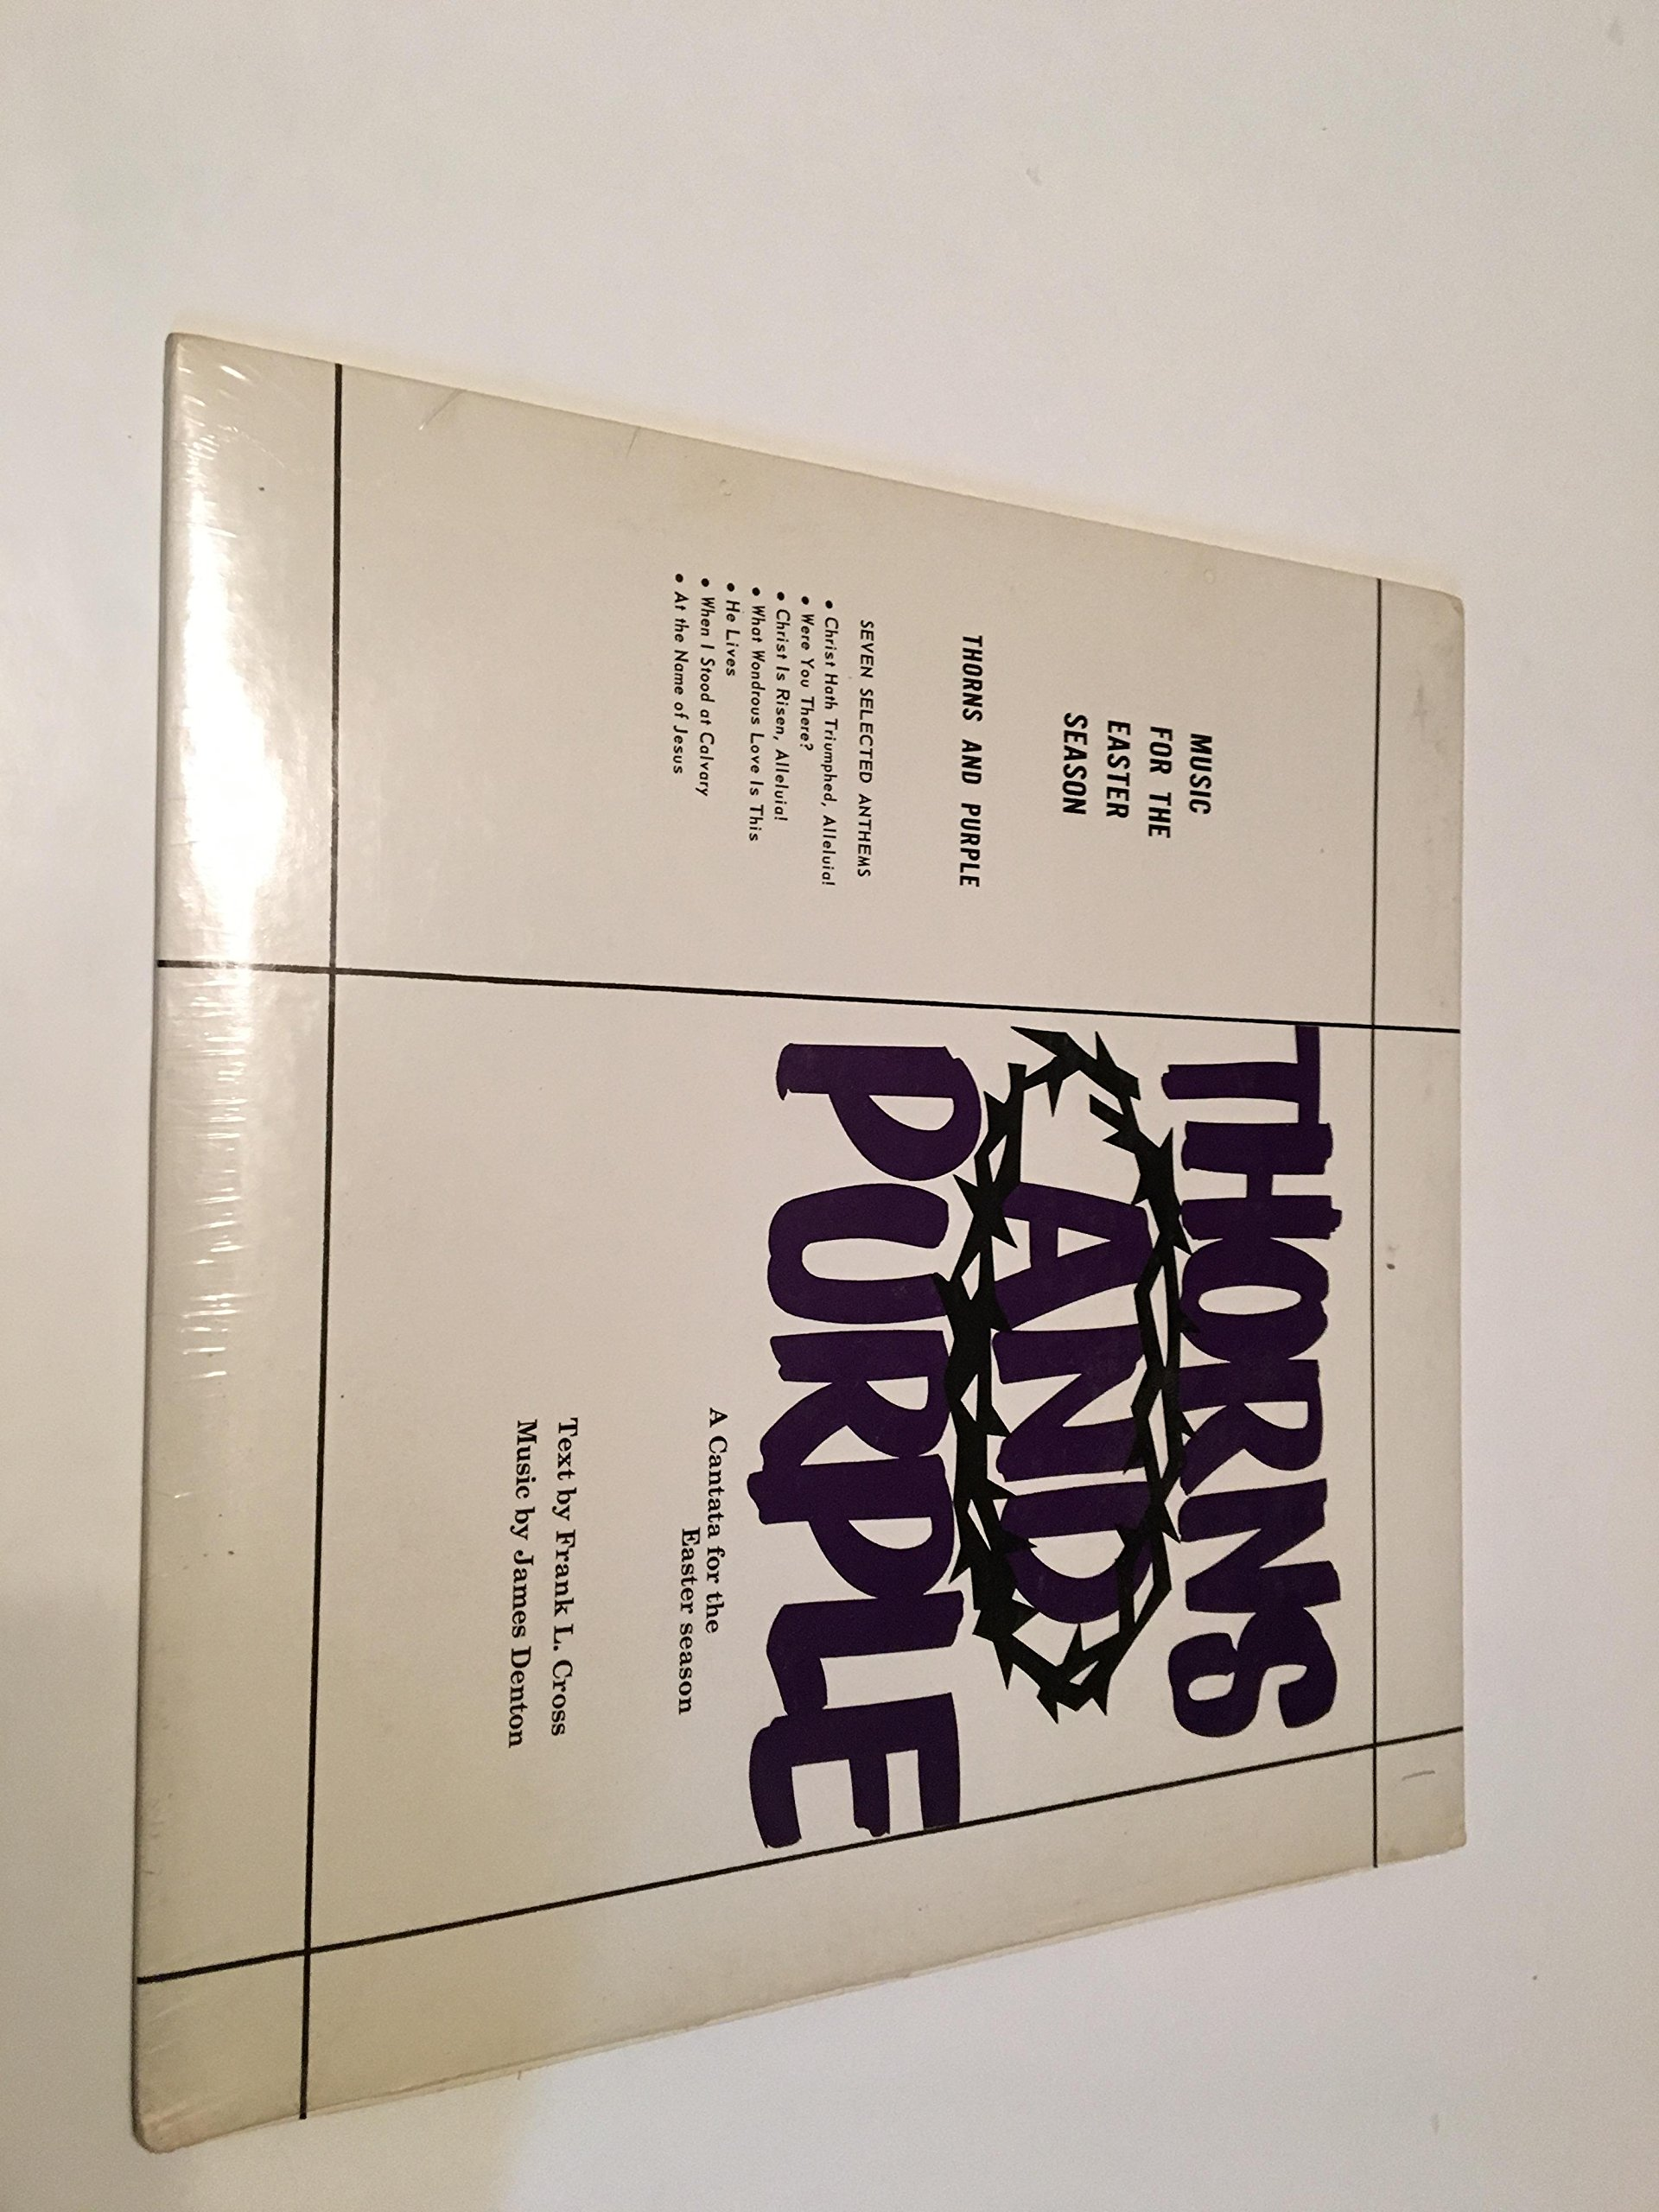 THORNS AND PURPLE A CANTATA FOR THE EASTER SEASON VINYL LP RECORD ALBUM